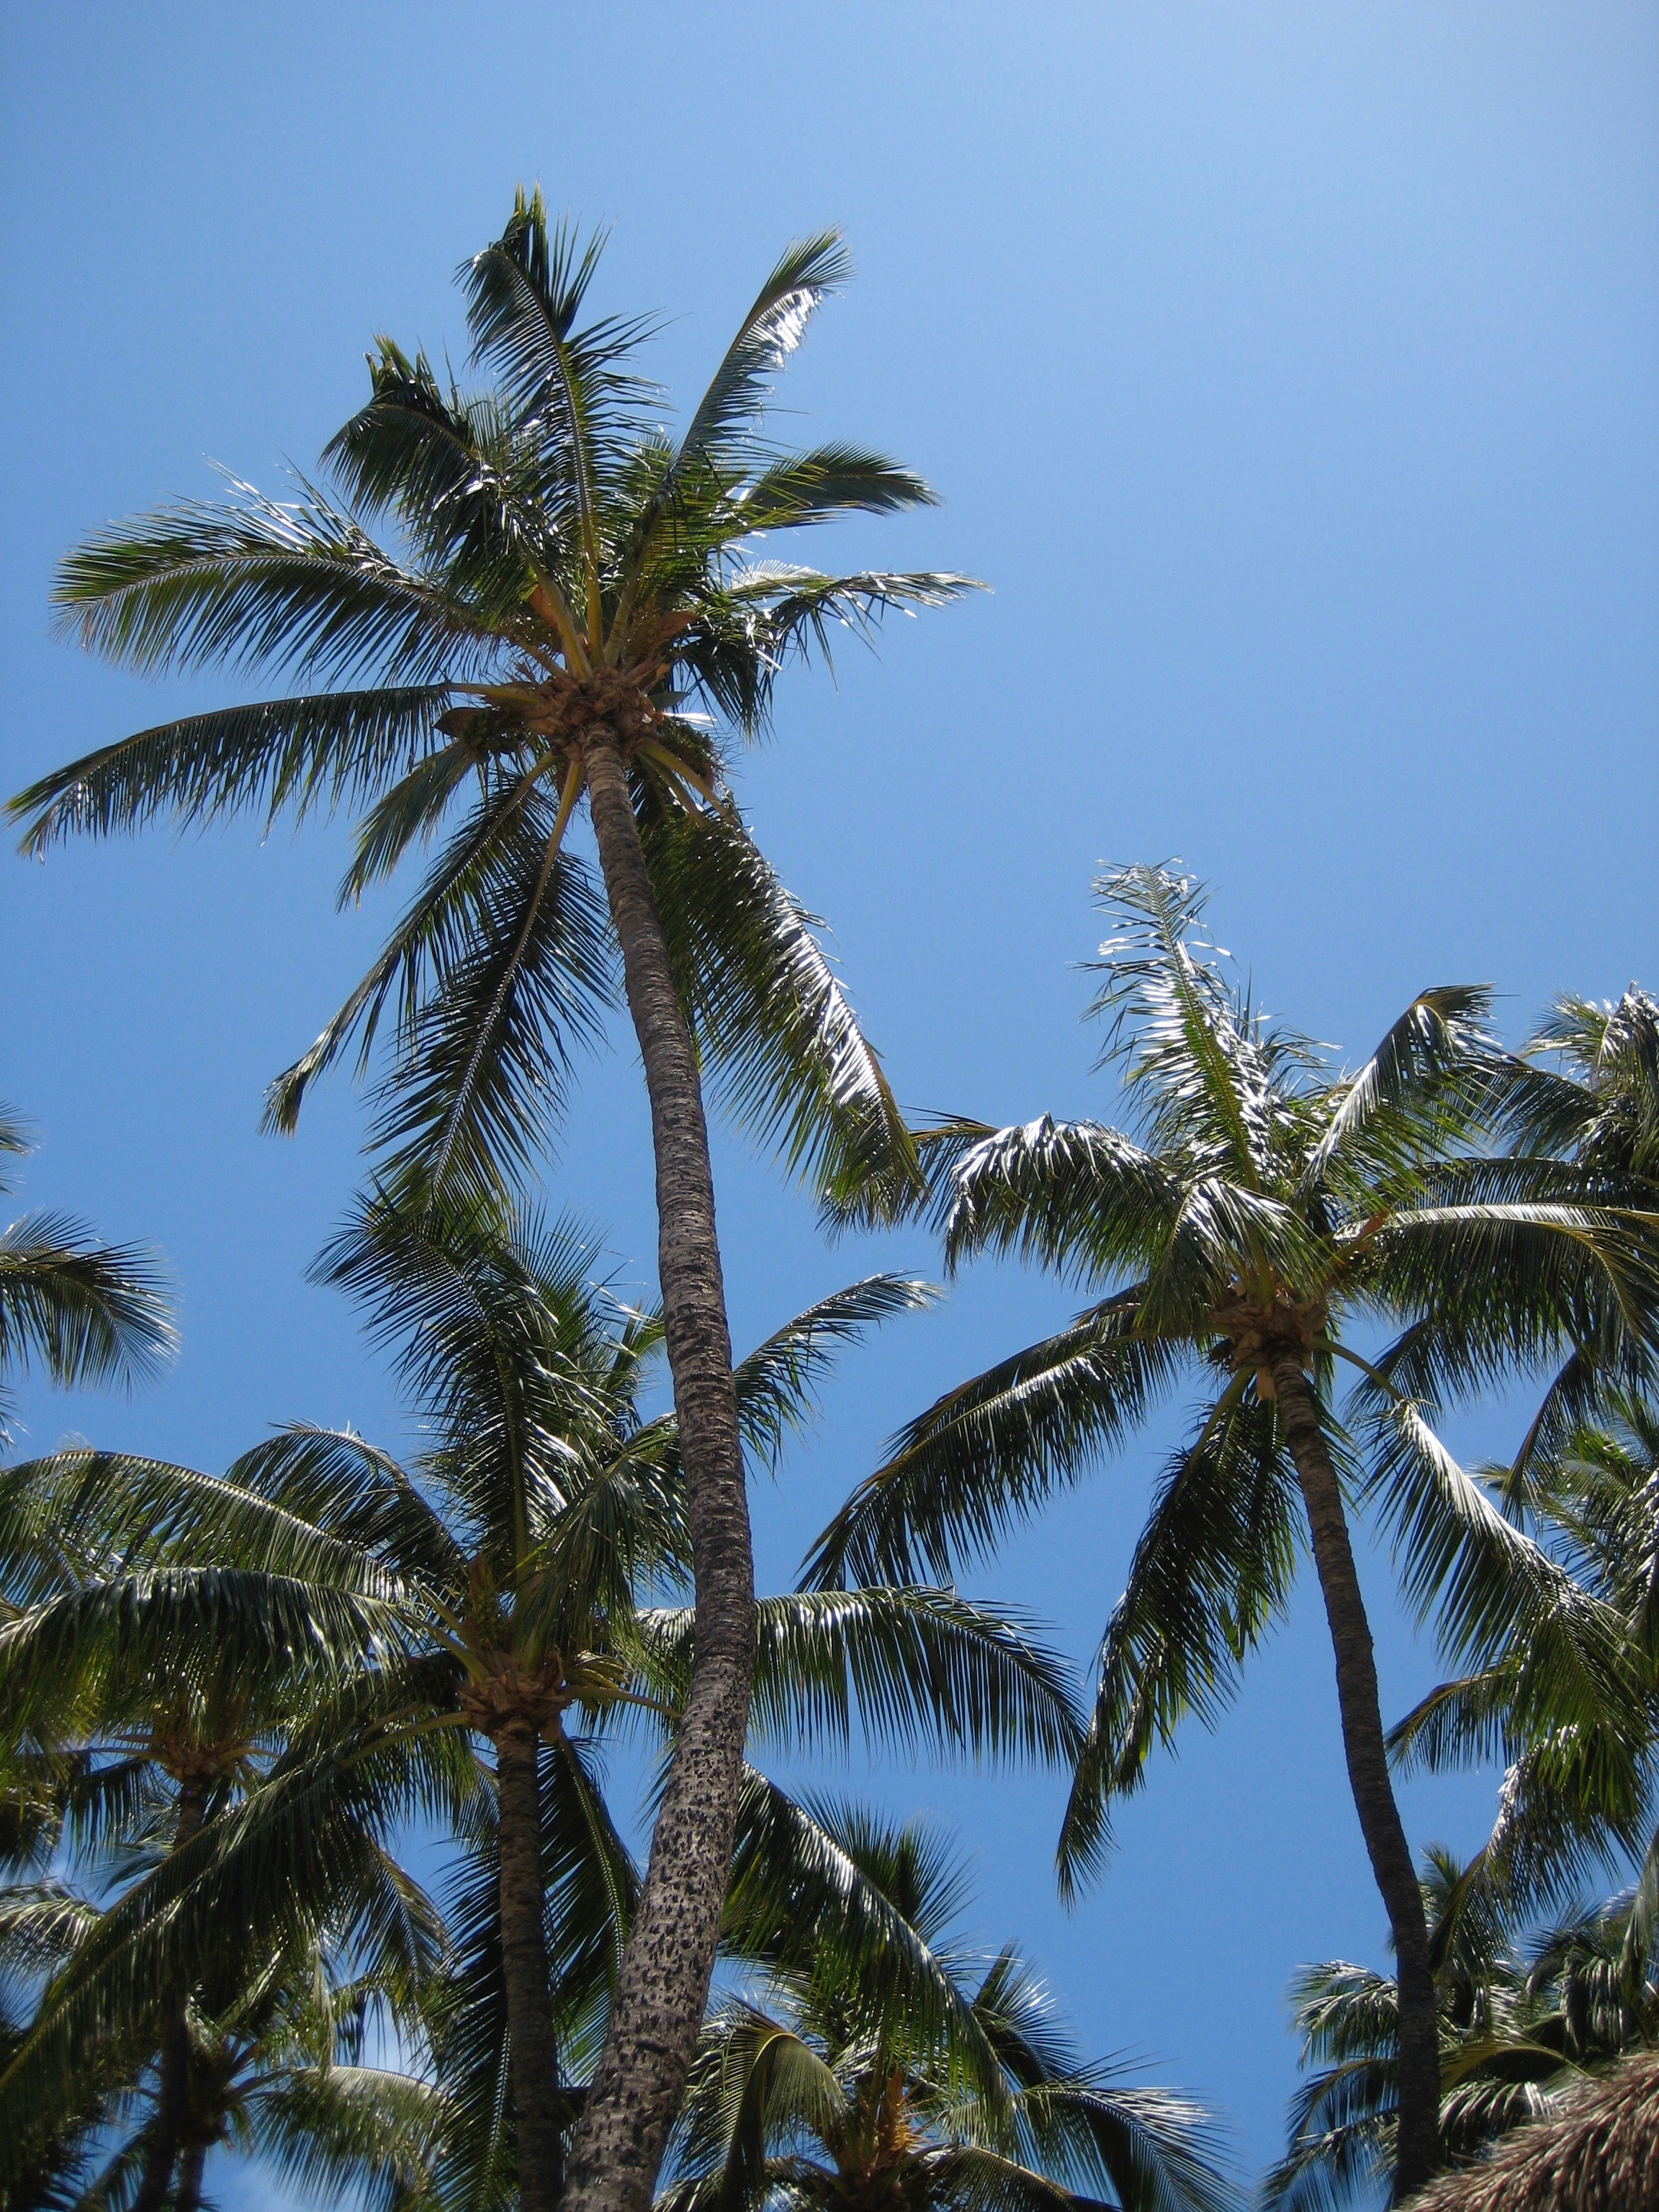 Palm trees against a clear blue sky.